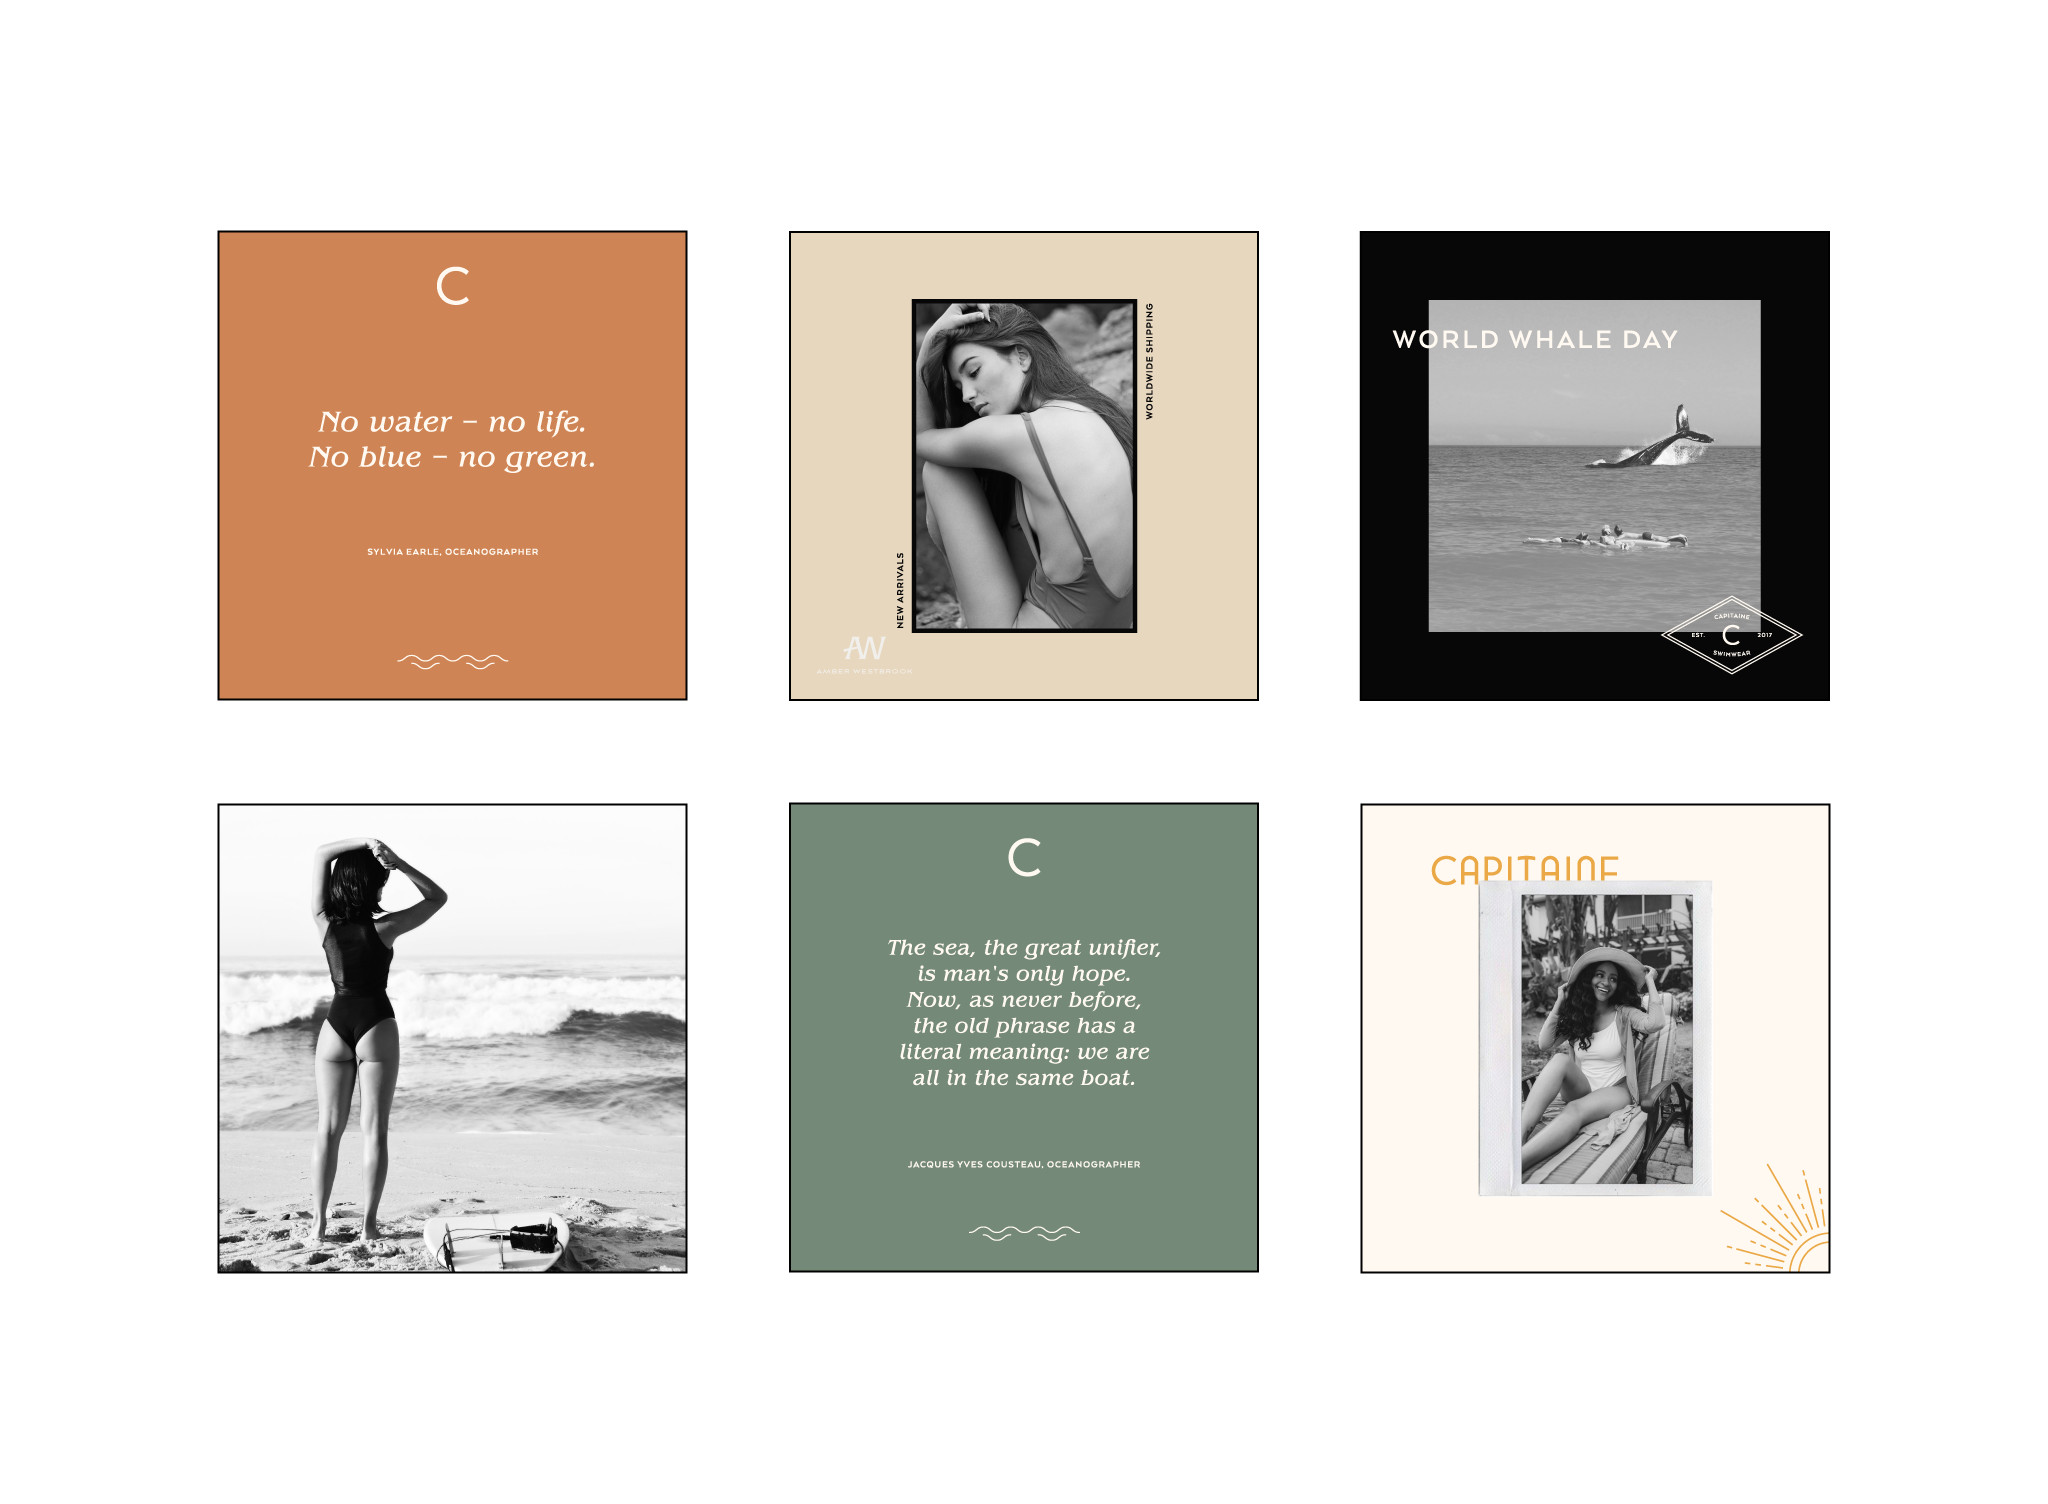 Social media design for sustainable swimwear brand. Instagram strategy and templates. Logo and branding for sustainable and ethical clothing - swimwear, beachwear and surfwear. Éternel Design Studio, timeless brand design with purpose and strategy.